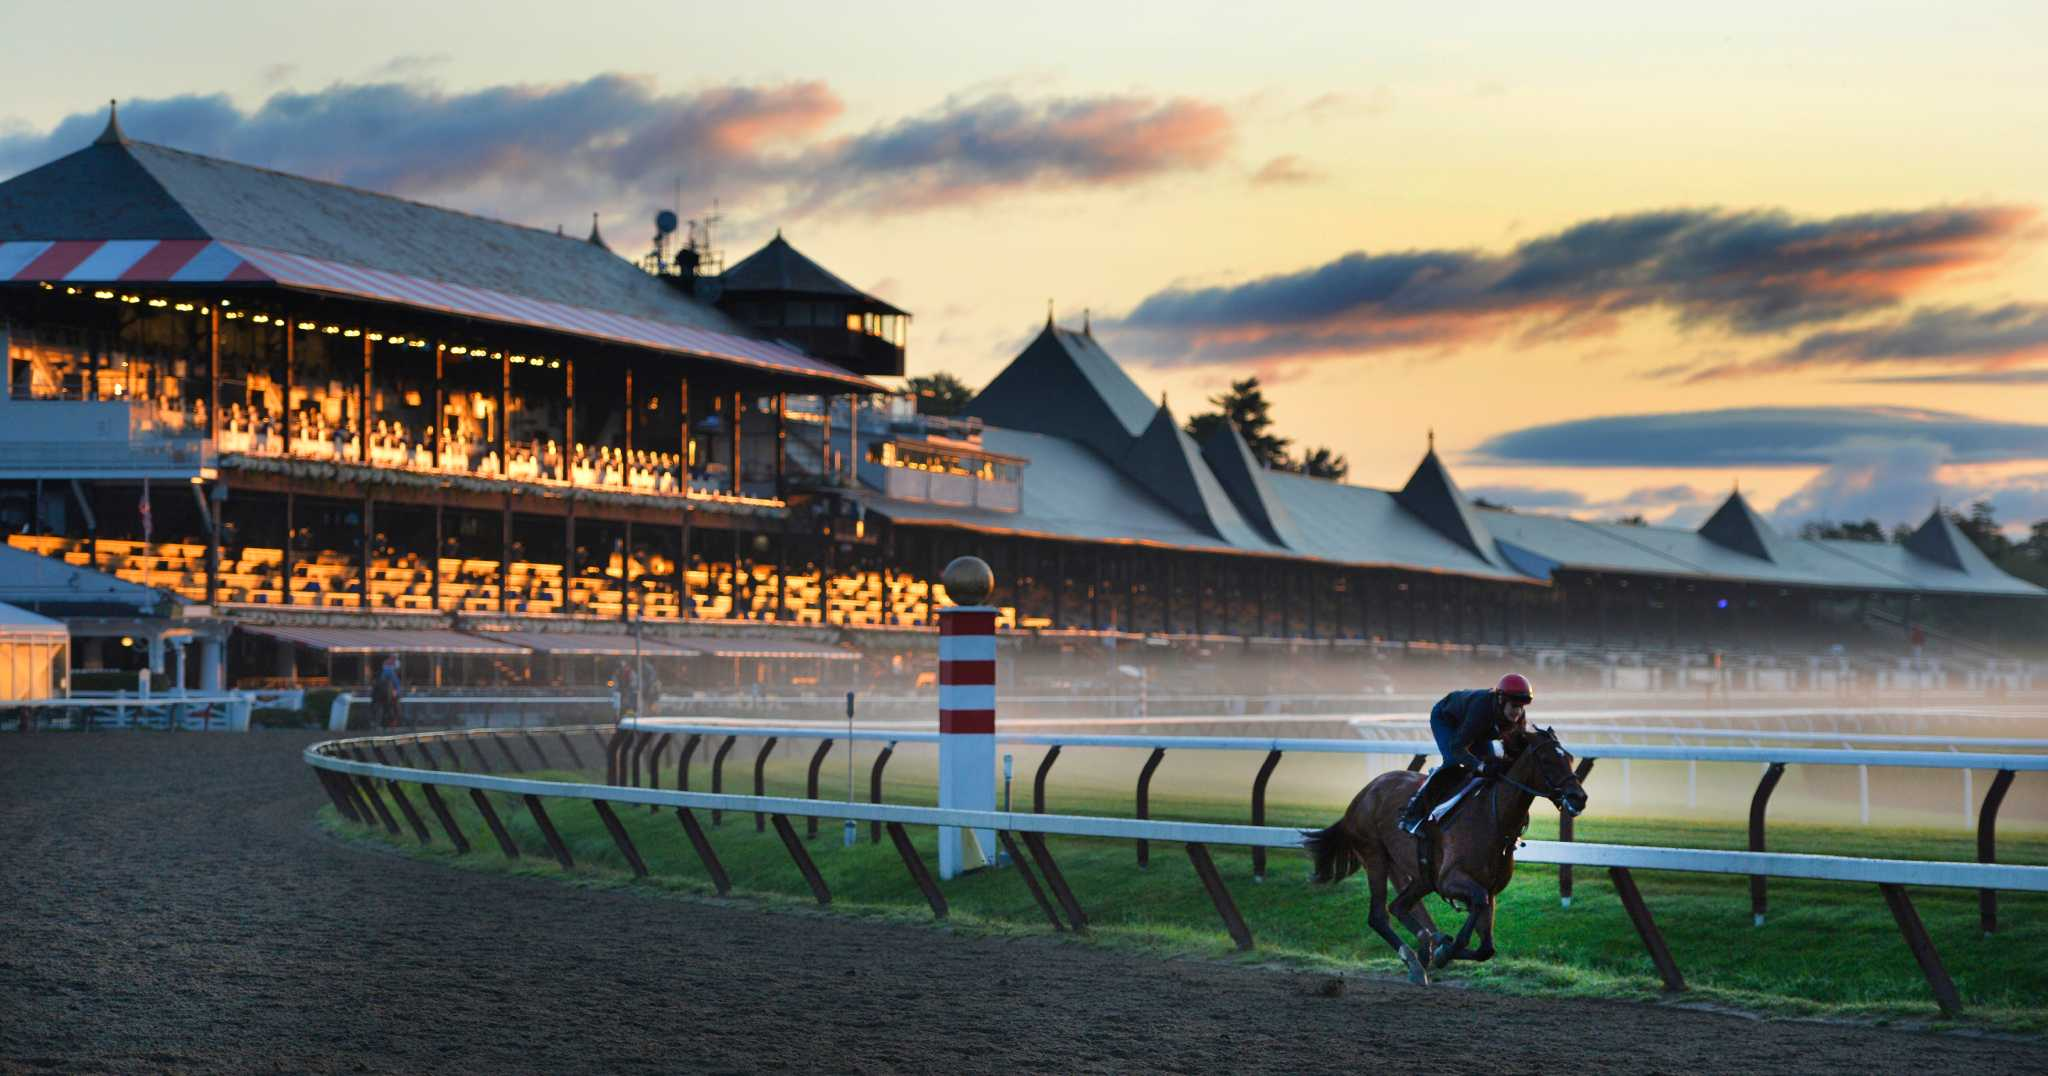 saratoga race course | saratoga springs, ny 12866 | new york path